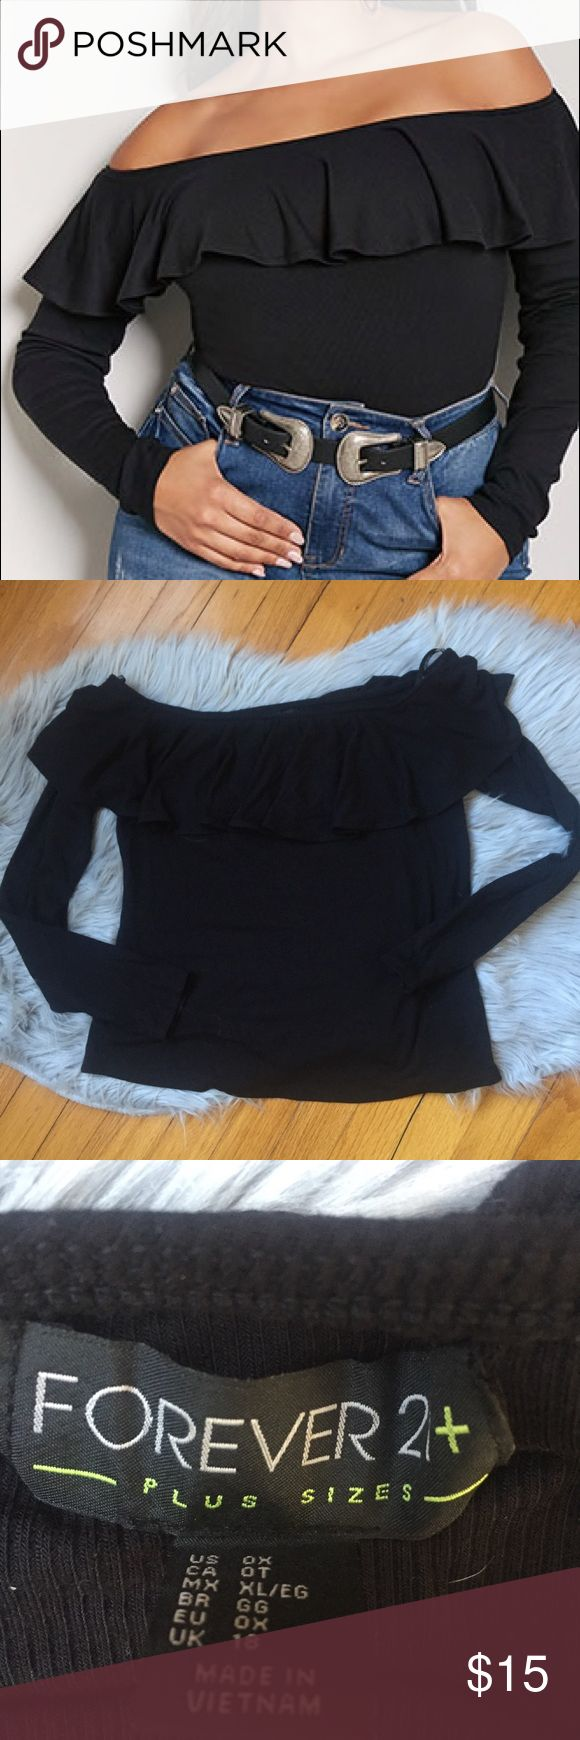 Forever 21 Ribbed Long Sleeve Off Shoulder Top Forever 21 Ribbed Long Sleeve Off the Shoulder Top with Ruffle neckline. New without tags. Never worn. Incredibly soft. No longer available online. Size 0x. Forever 21 Tops Blouses